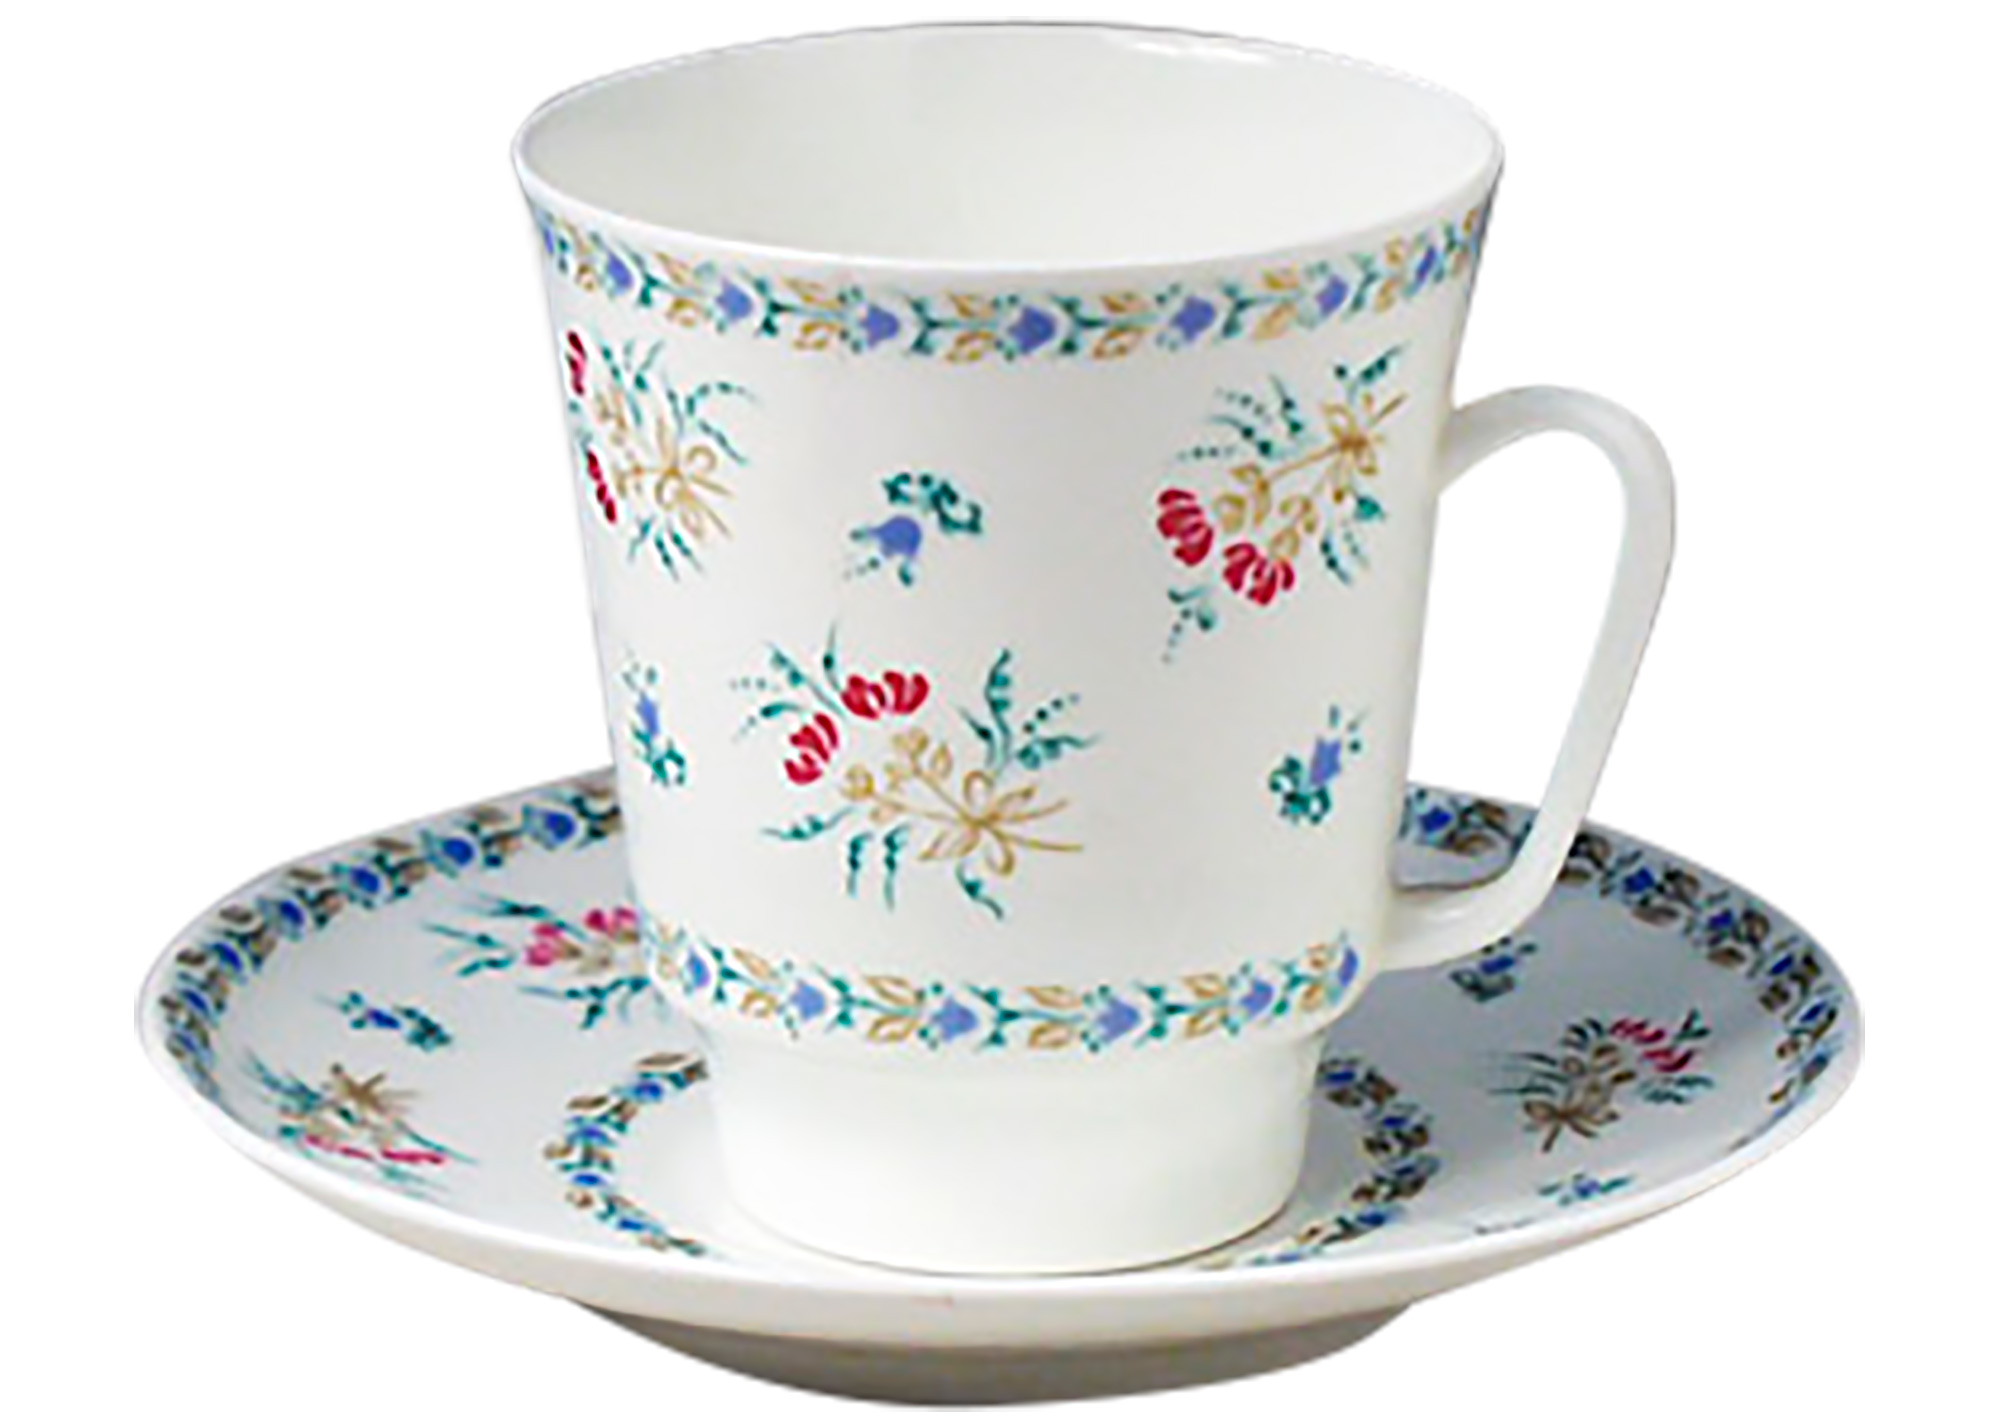 Buy Blue Bells Cup and Saucer, Bone China at GoldenCockerel.com